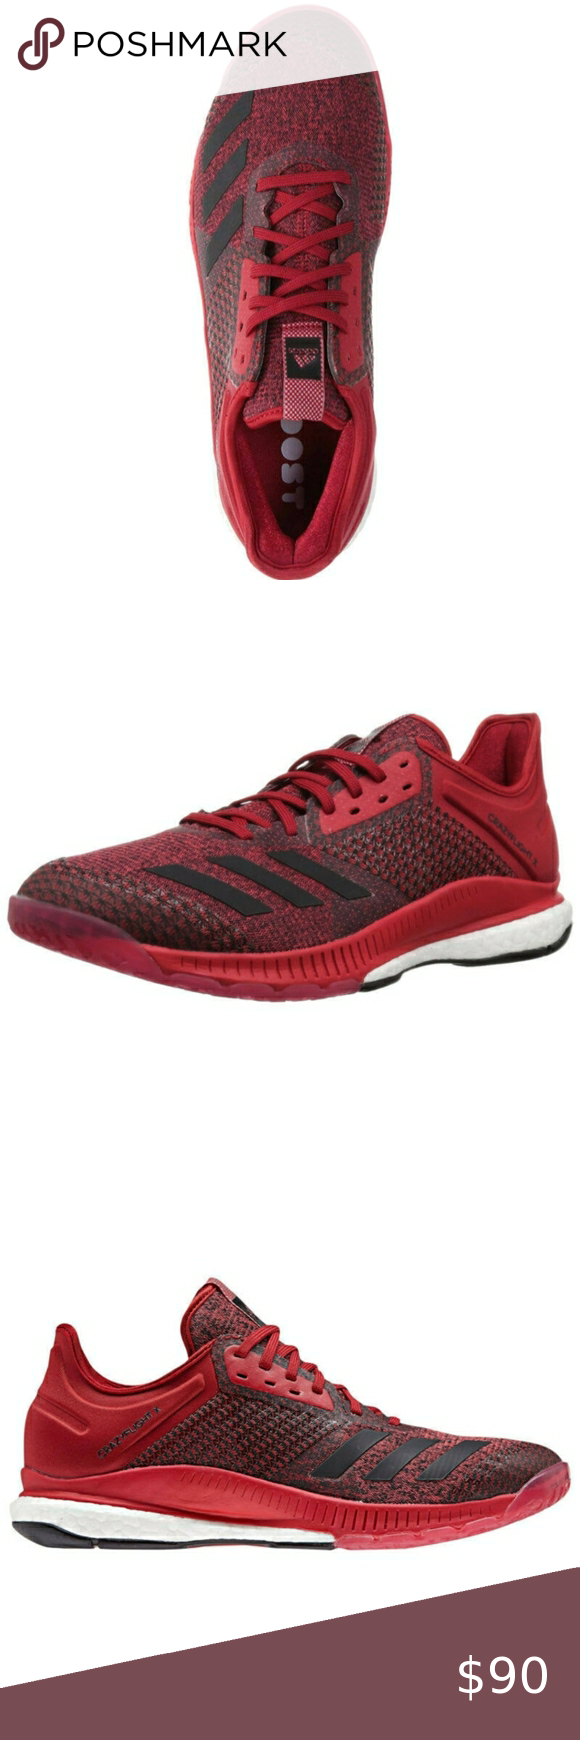 Adidas Crazyflight X In 2020 Adidas Fashion Shoe Style Volleyball Shoes